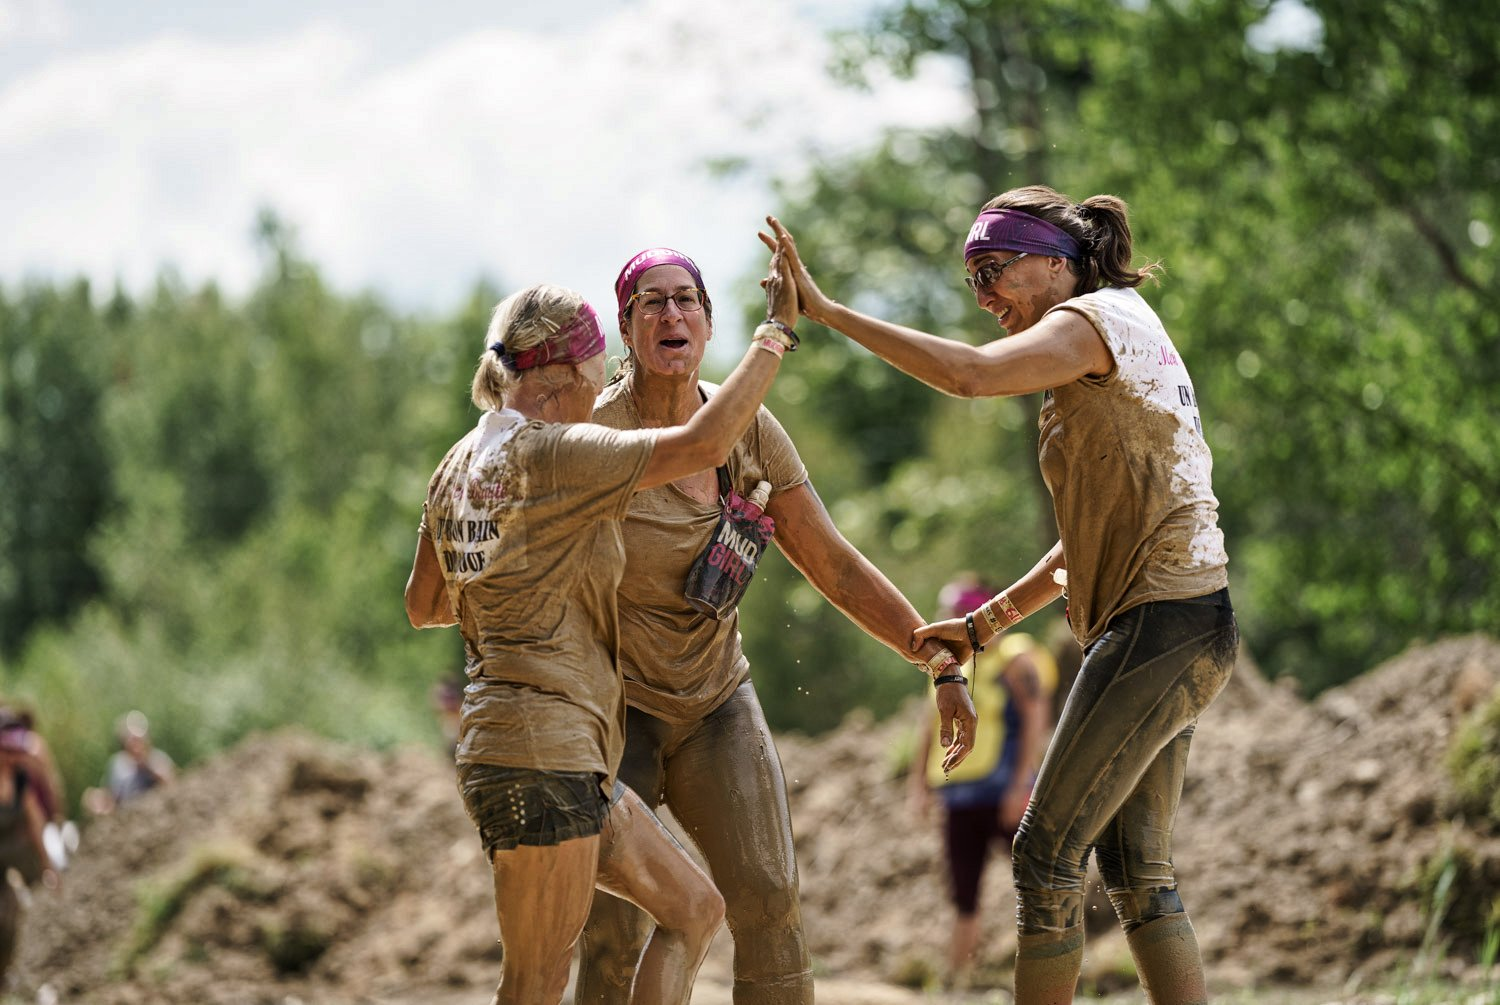 mudgirl run